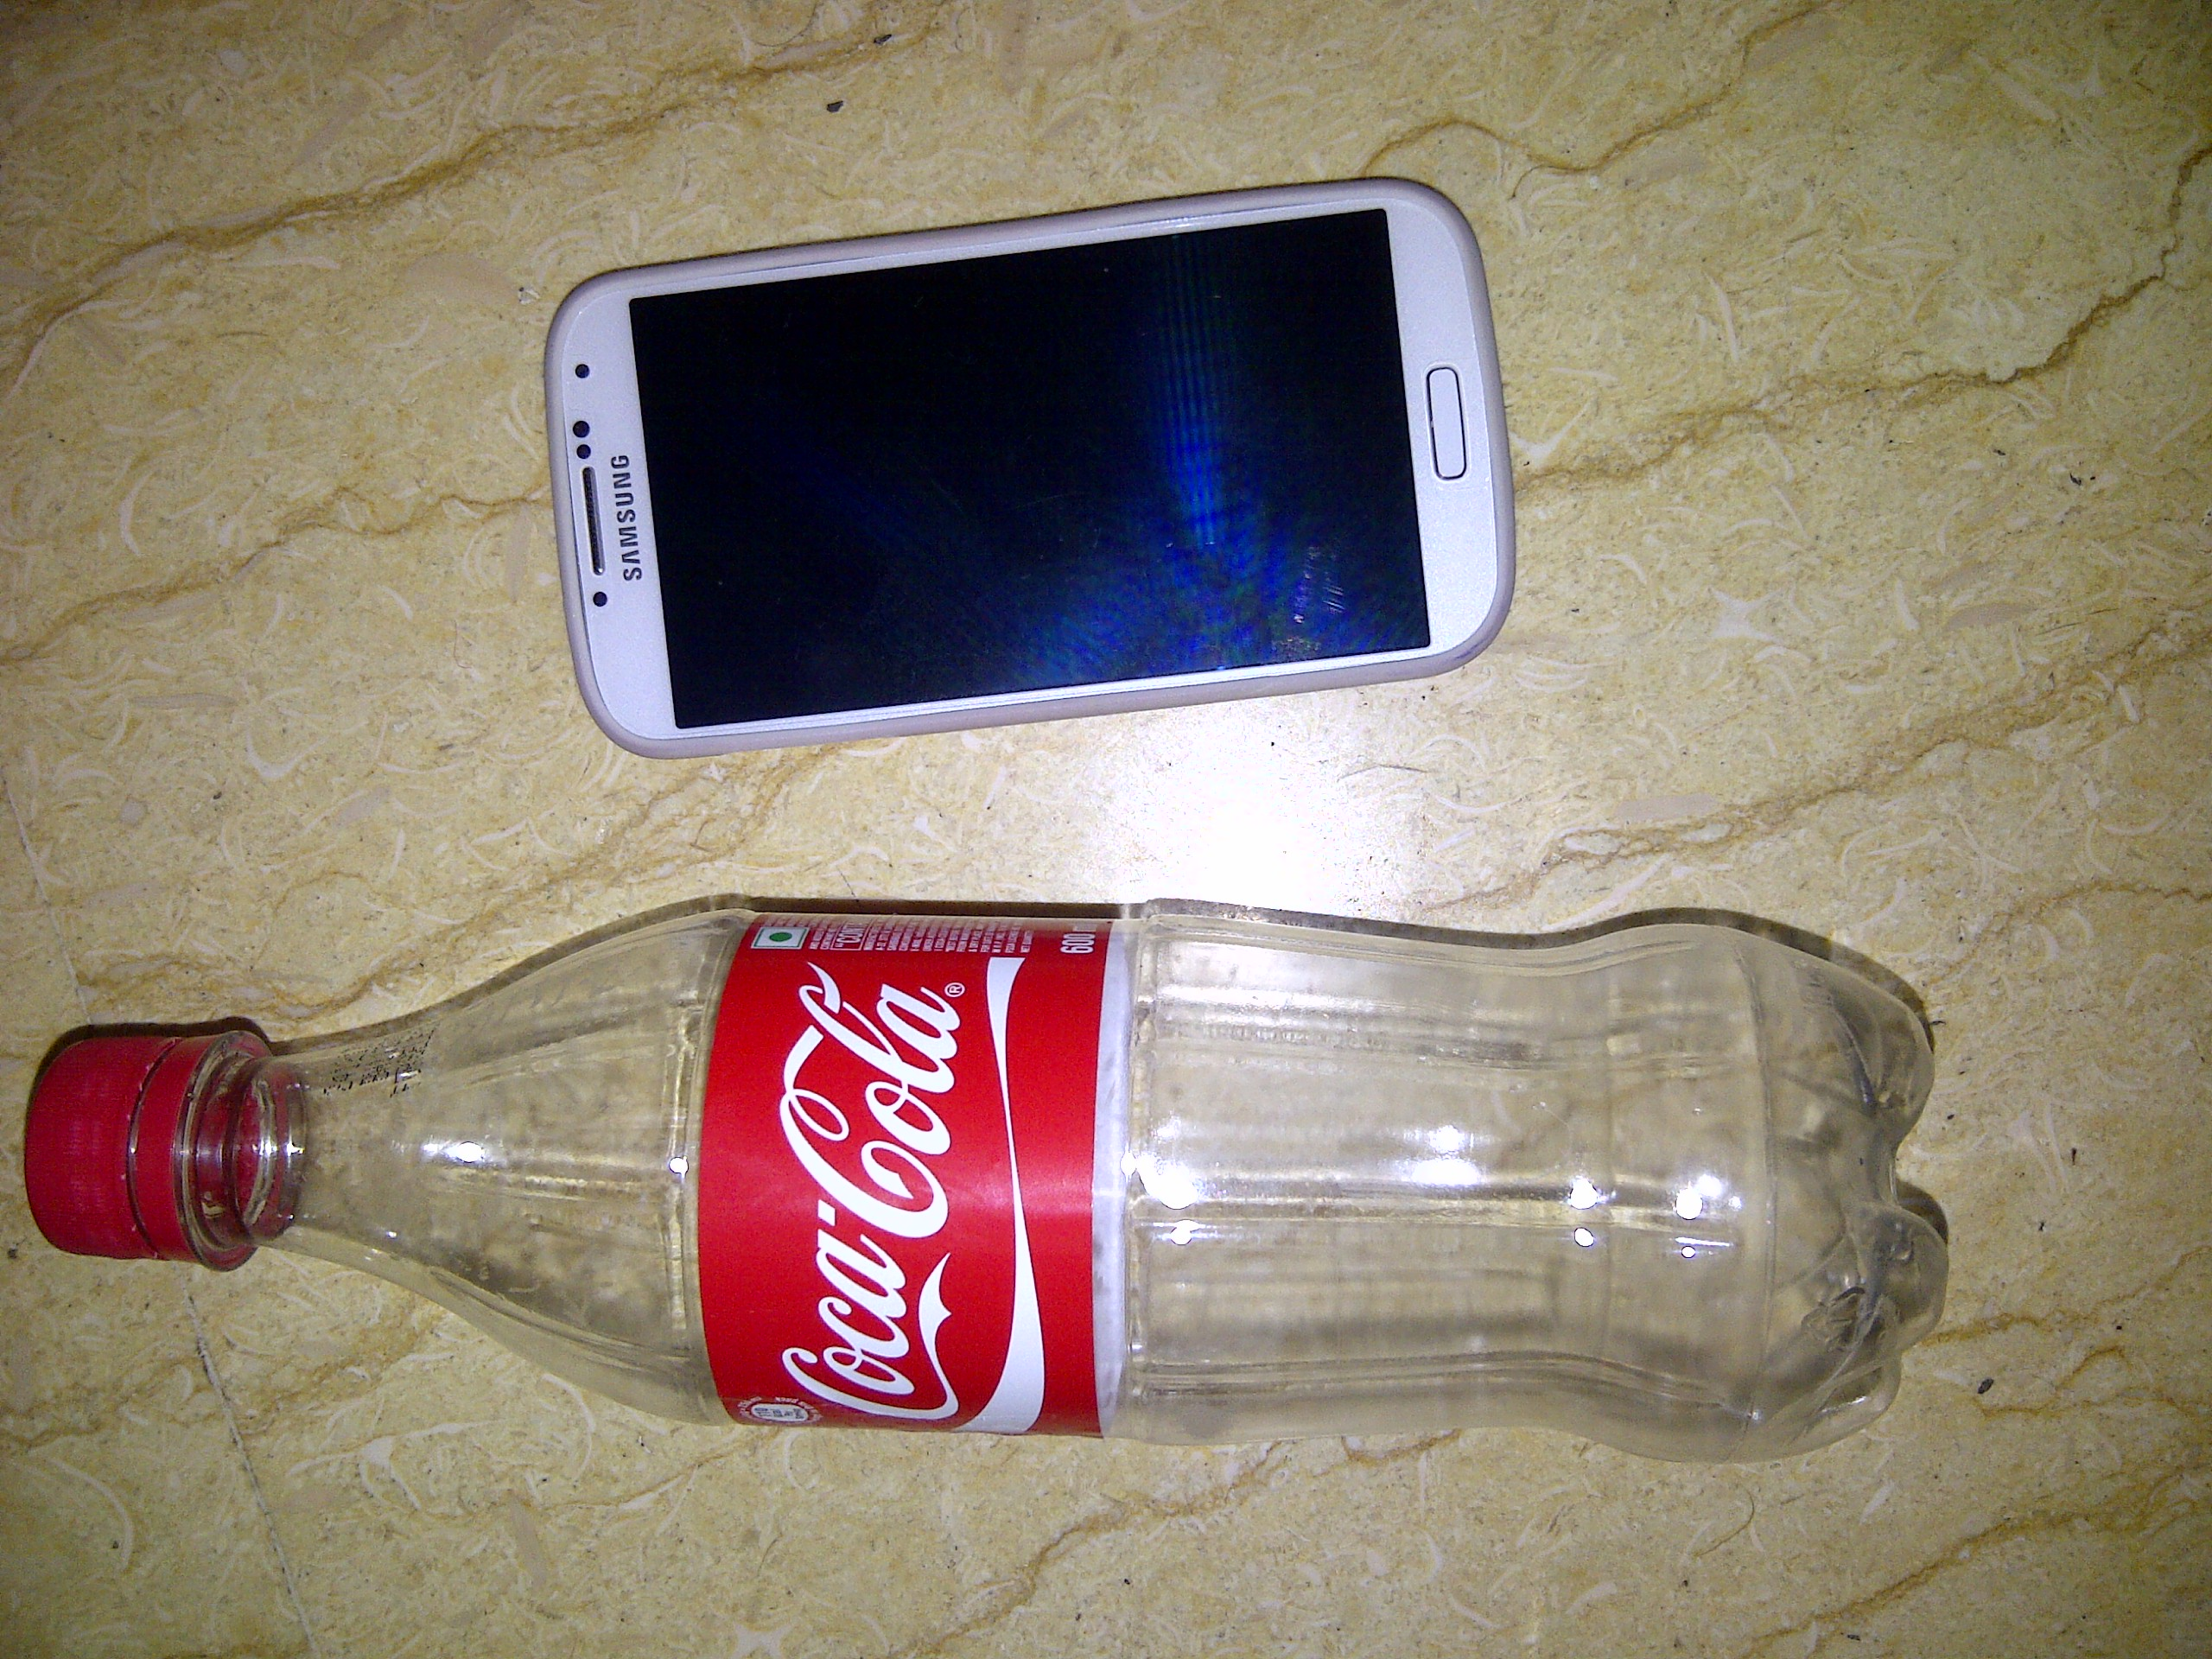 Simplest Convenient (Almost Free) Loudspeaker for all Mobile phones + a Complimentary Tumbler/Vessel( Jugaad Technology)